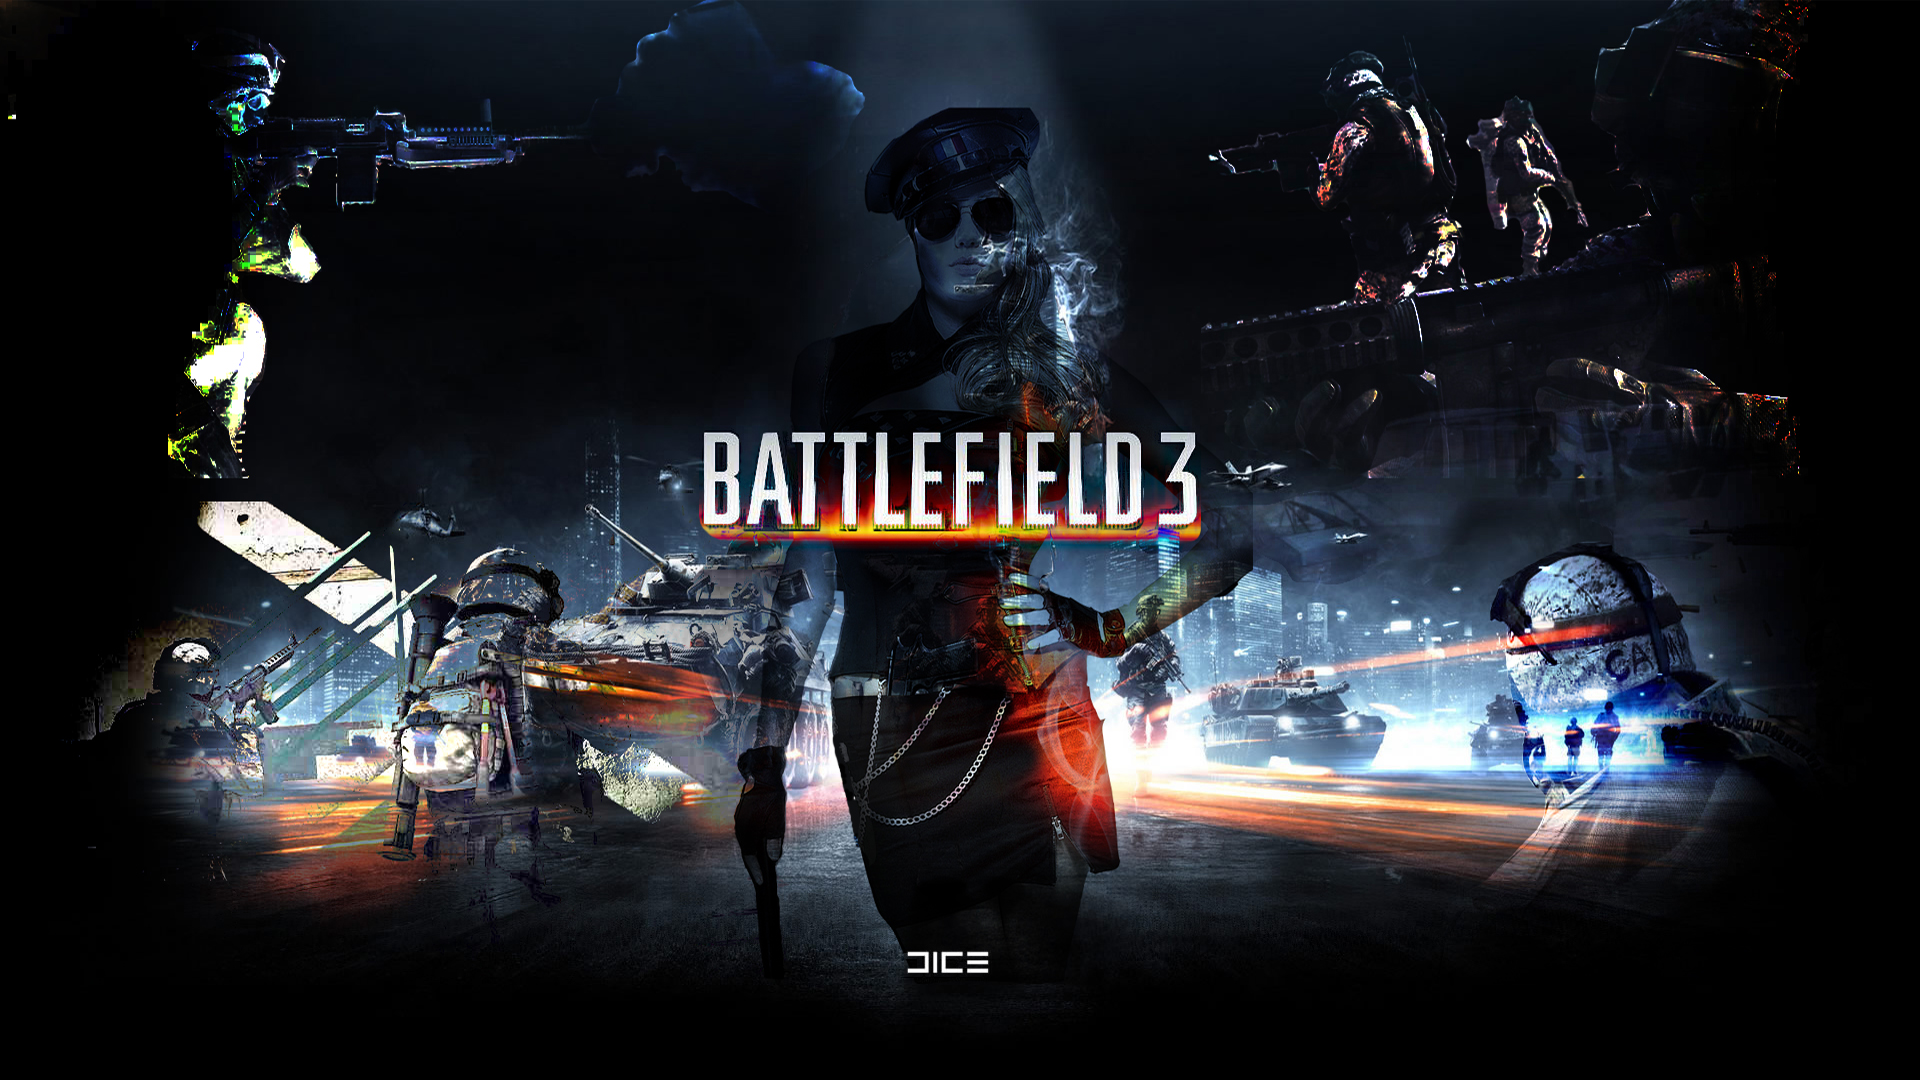 Bf3 Wallpaper 2560x1440 Battlefield 3 wallpapers 1920x1080